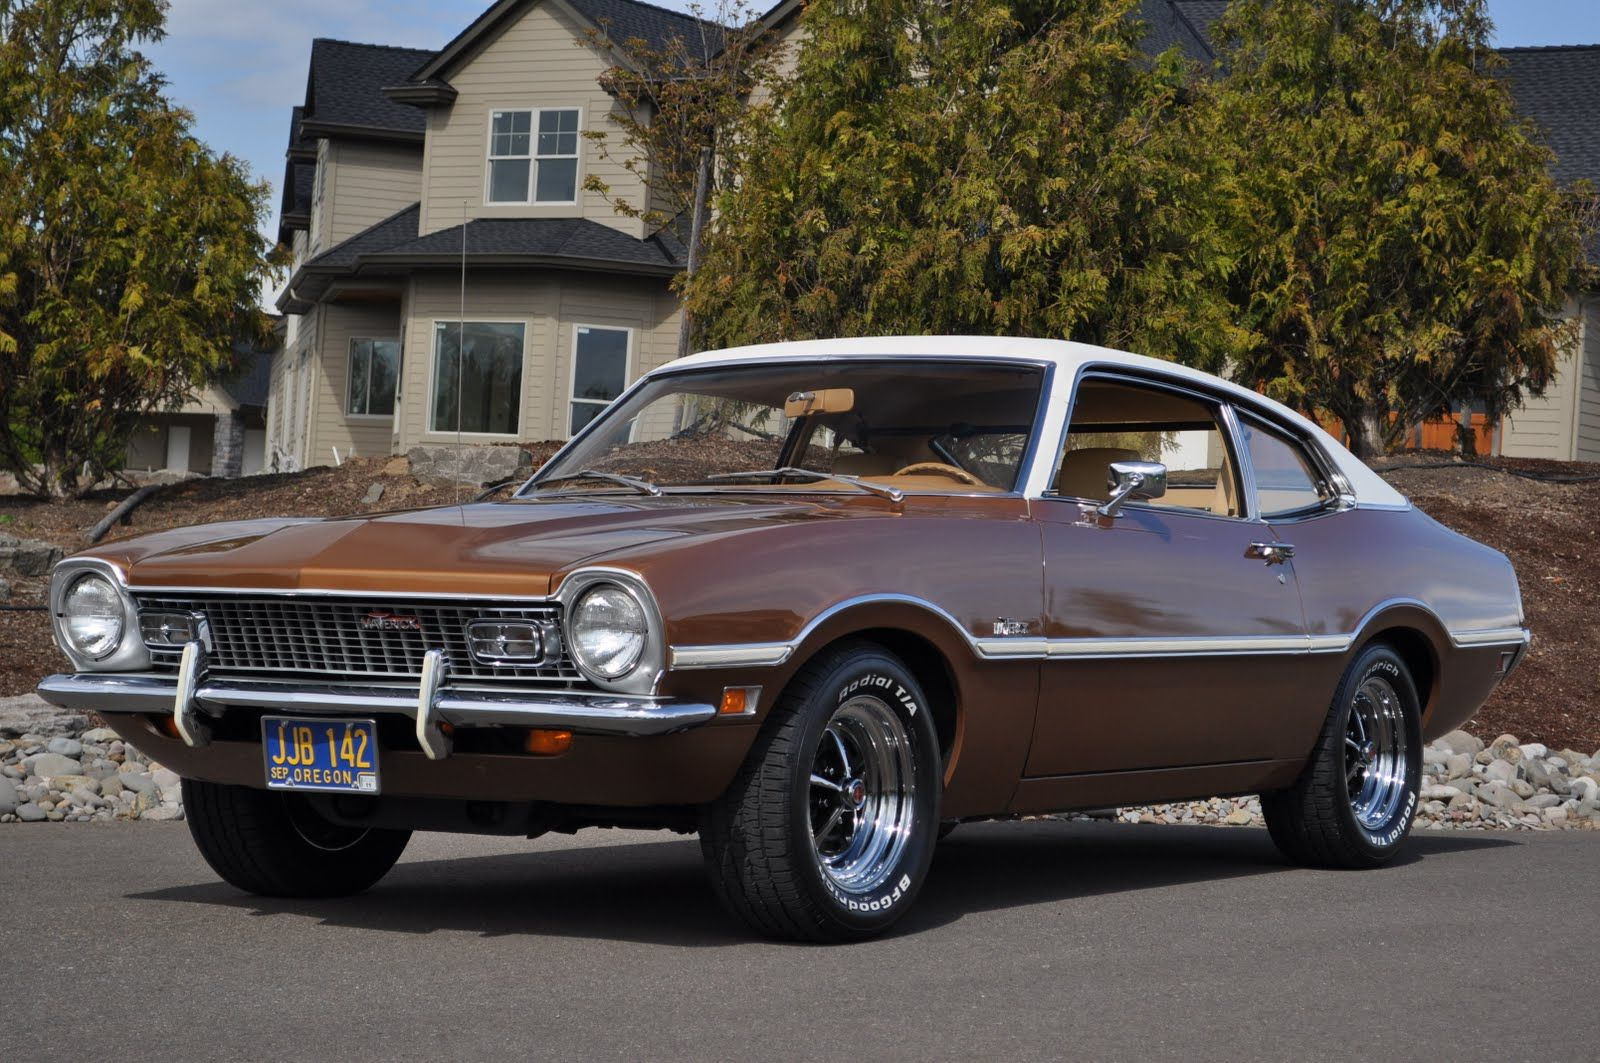 Ford maverick 1972 ford maverick ldo maverick comet media gallery